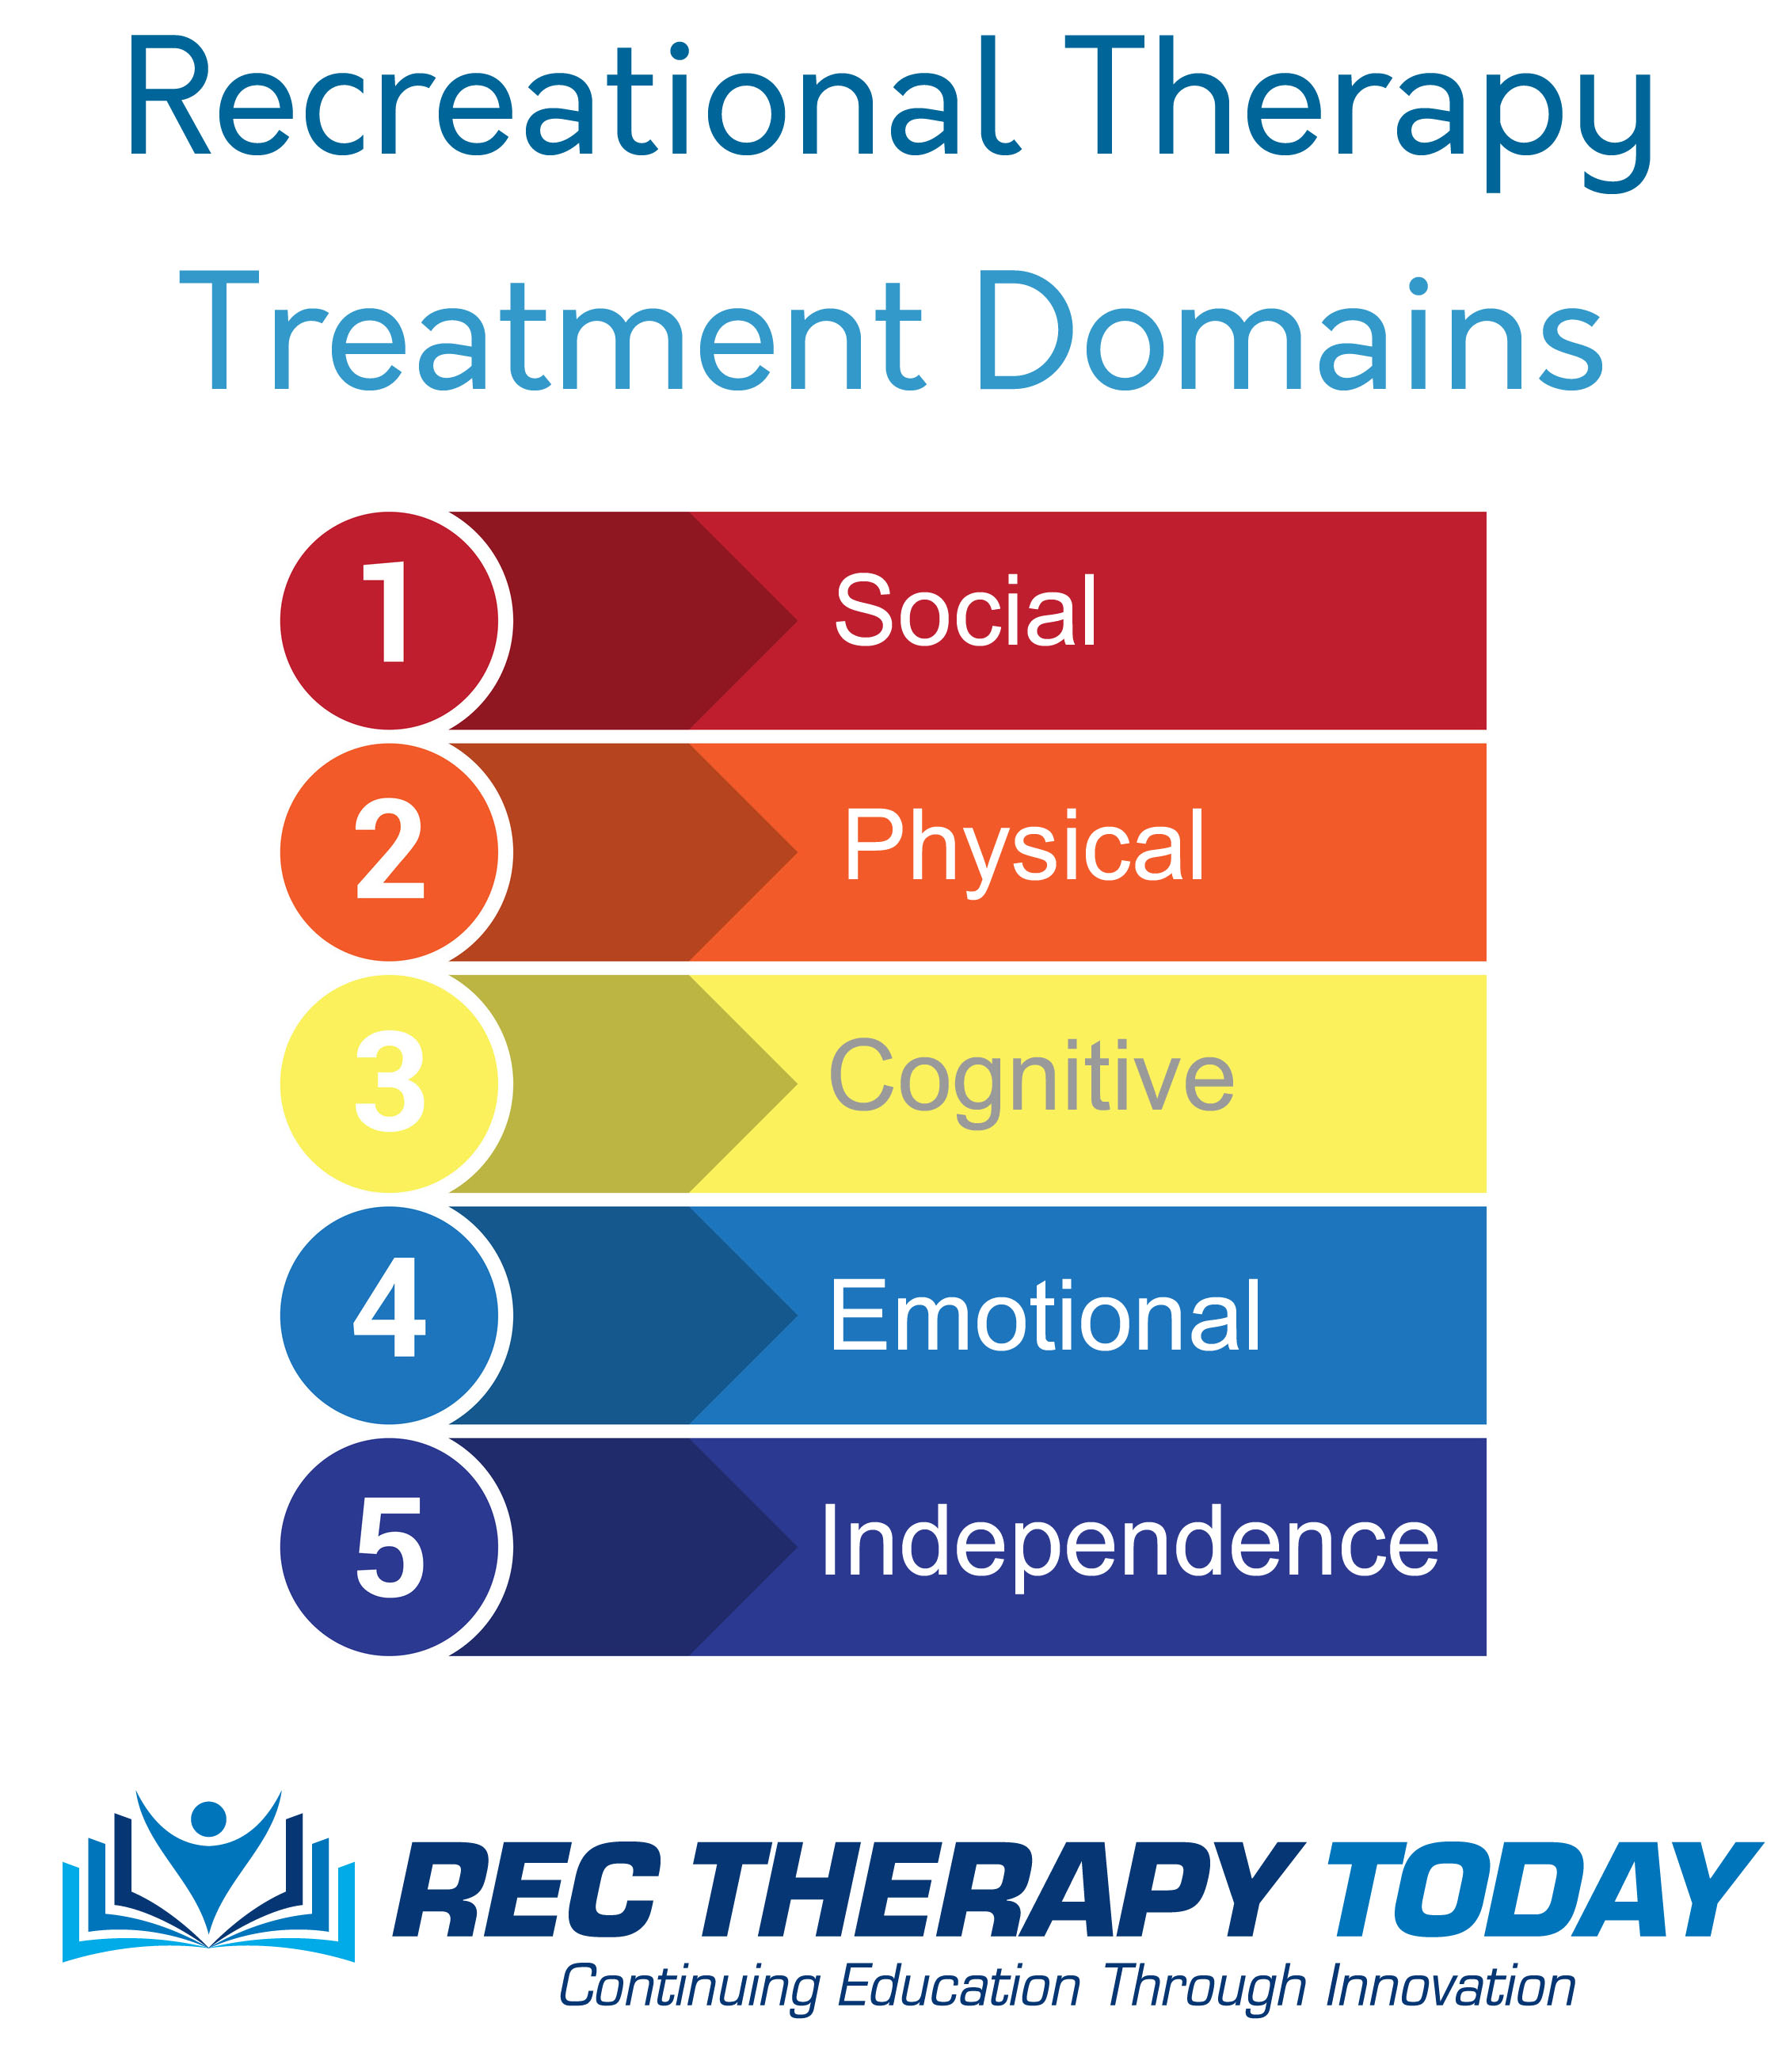 Recreational Therapy treatment domains